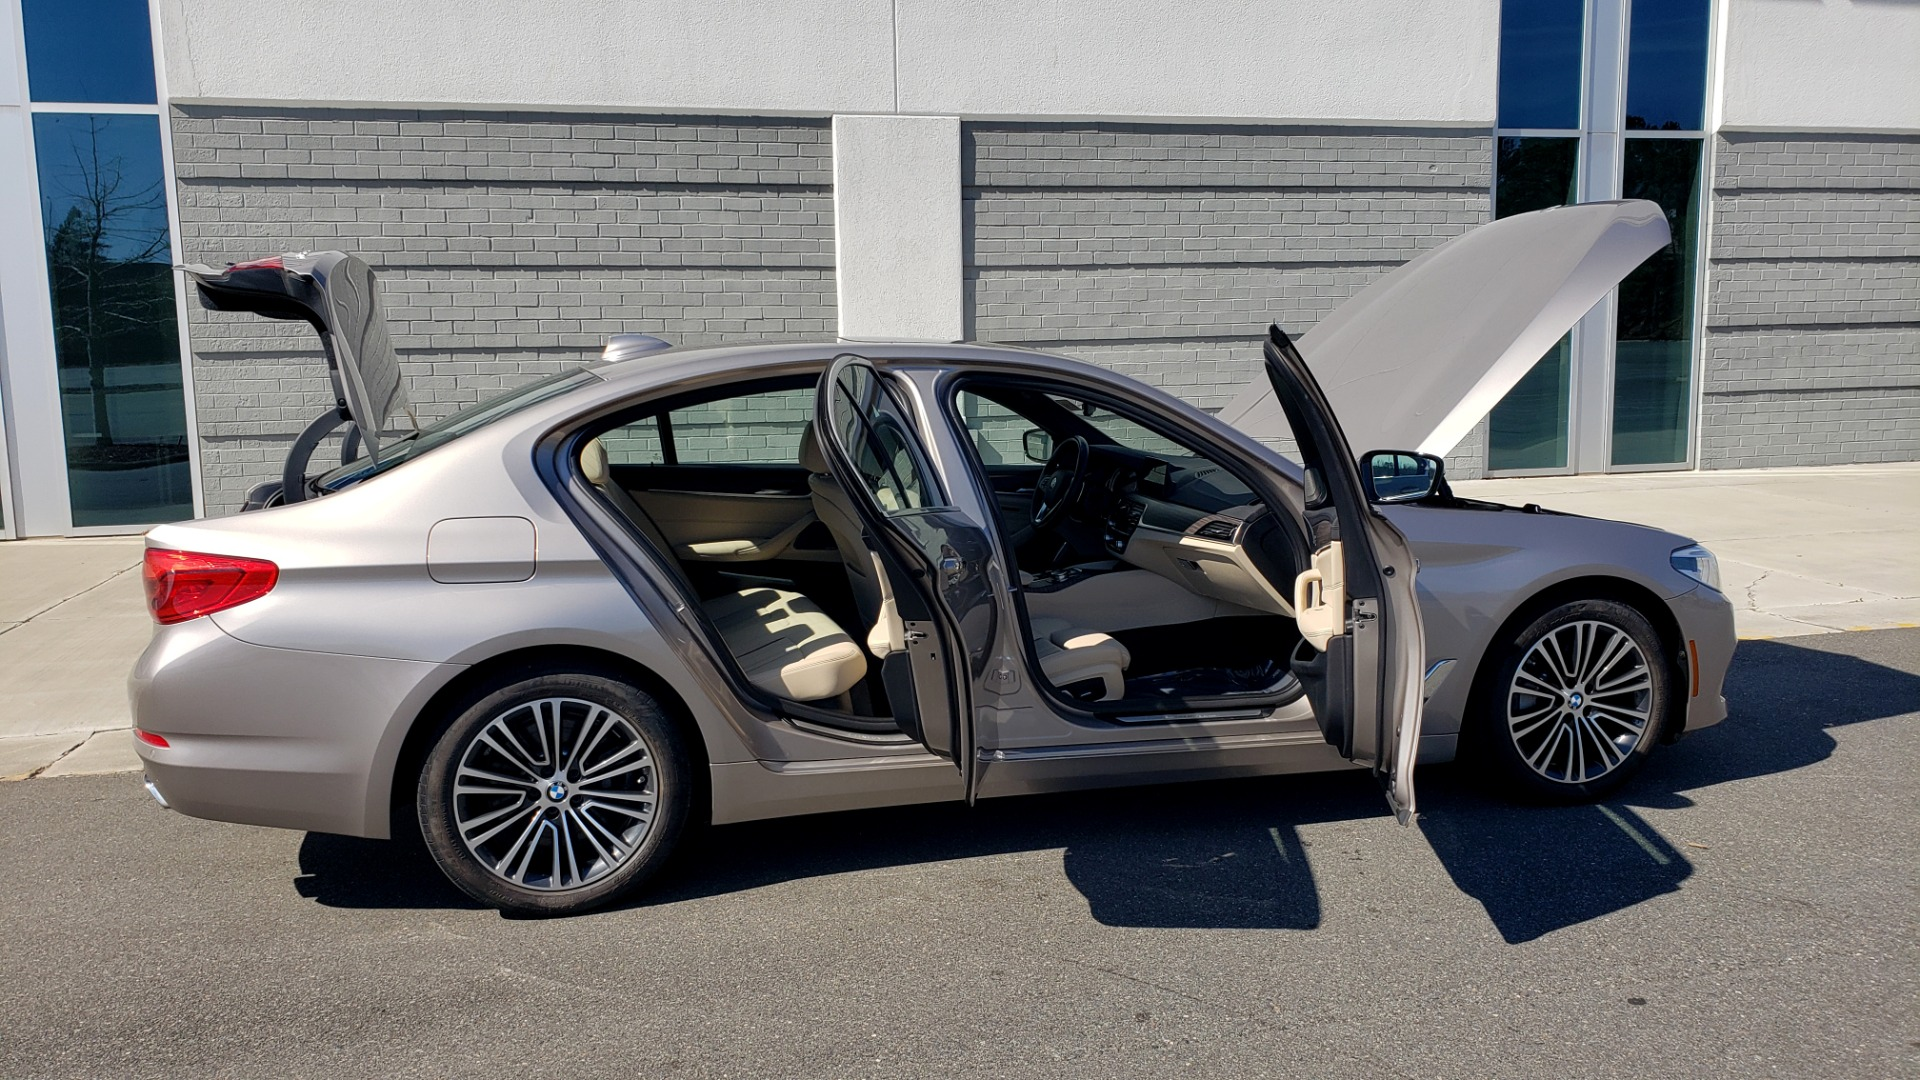 Used 2018 BMW 5 SERIES 540IXDRIVE PREMIUM / DRVR ASST PLUS / LUX PKG / APPLE CARPLAY for sale Sold at Formula Imports in Charlotte NC 28227 10